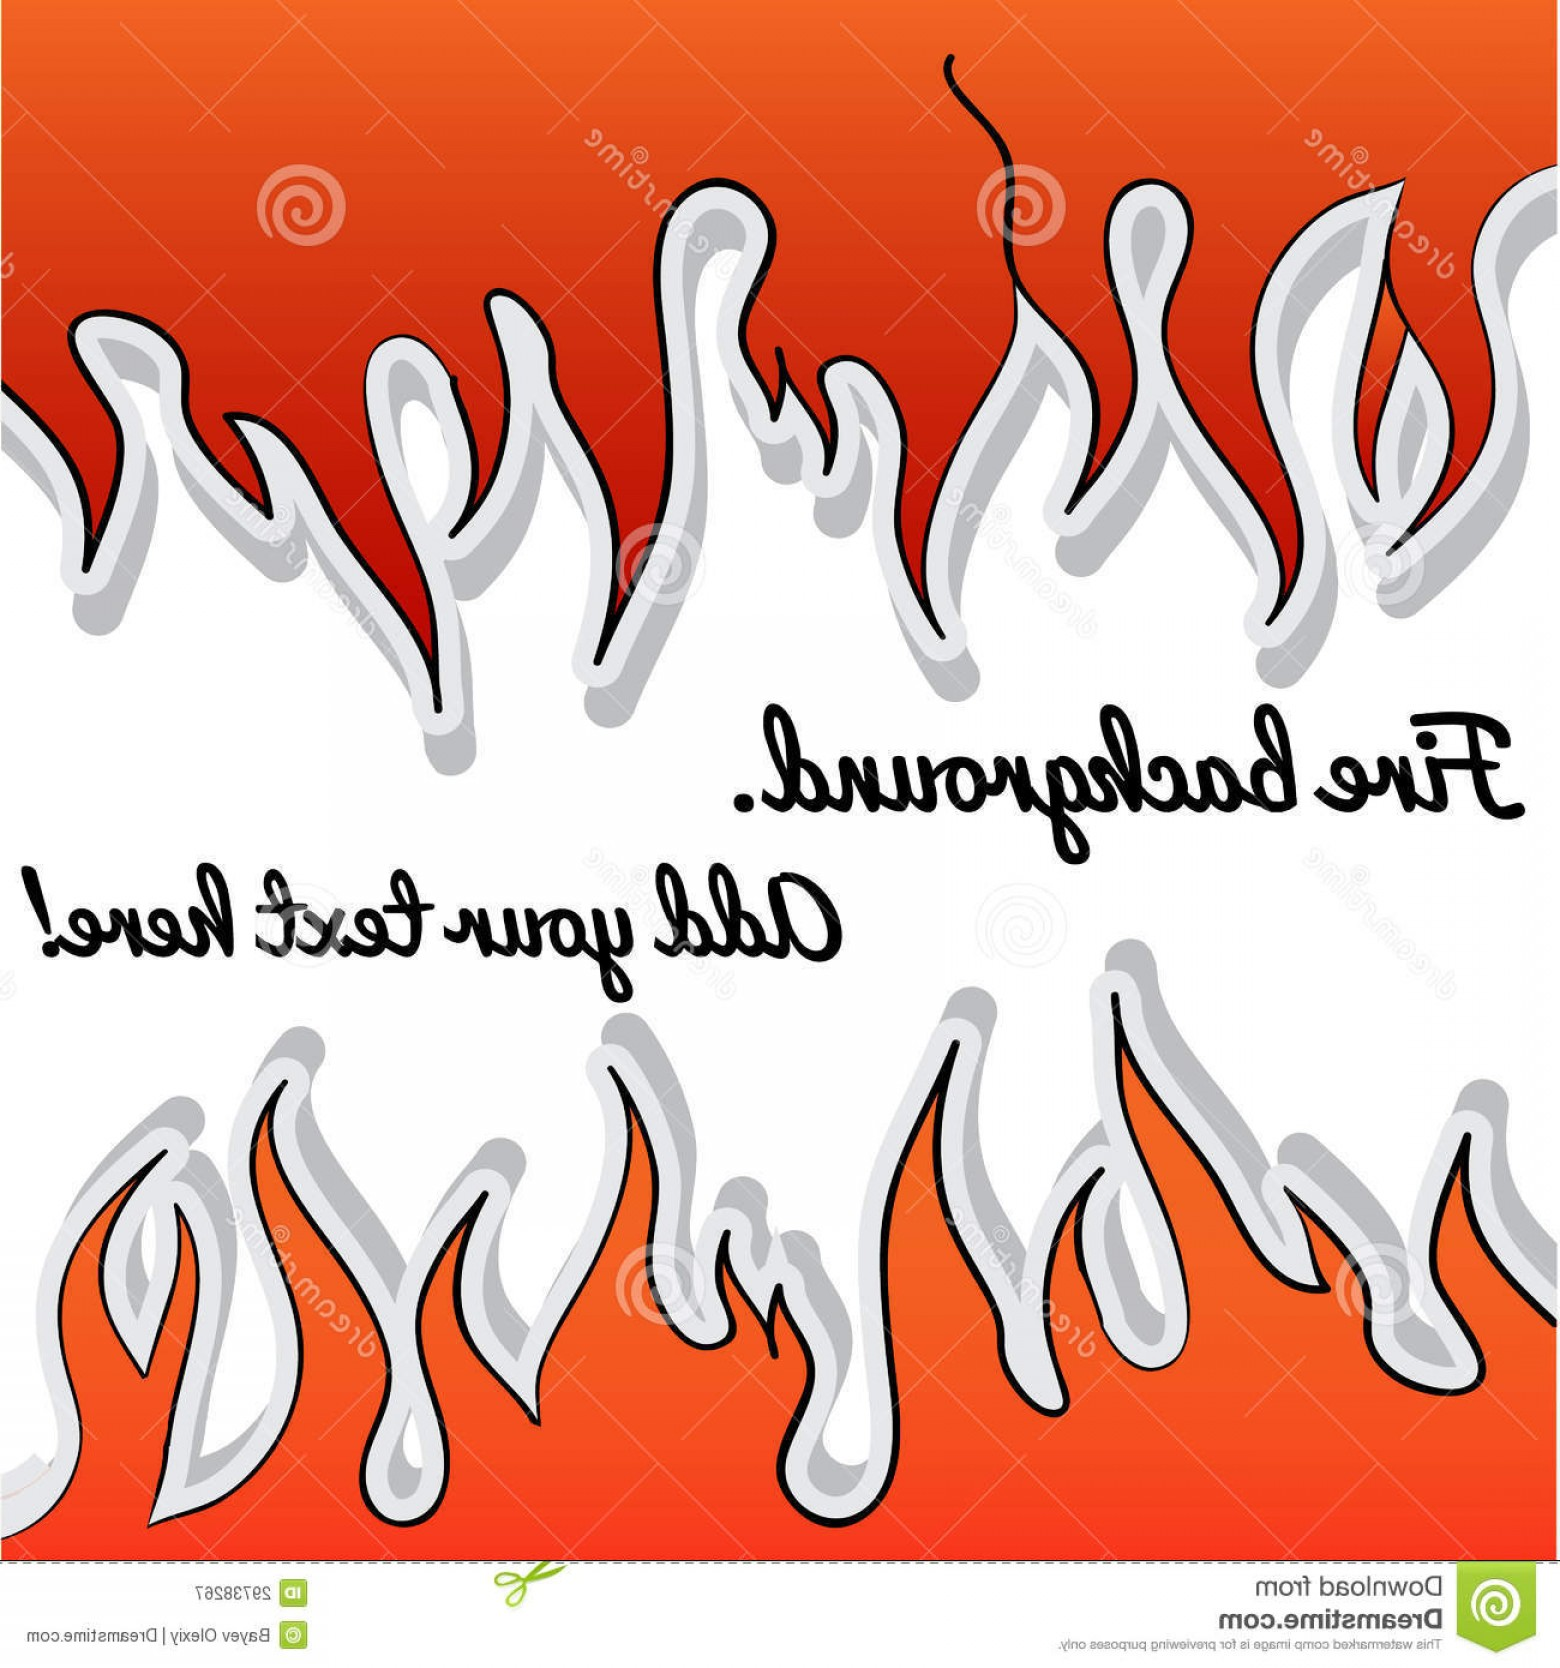 Vector Flame Stick Pattern: Royalty Free Stock Photography Background Stick Fire Place Your Text Image